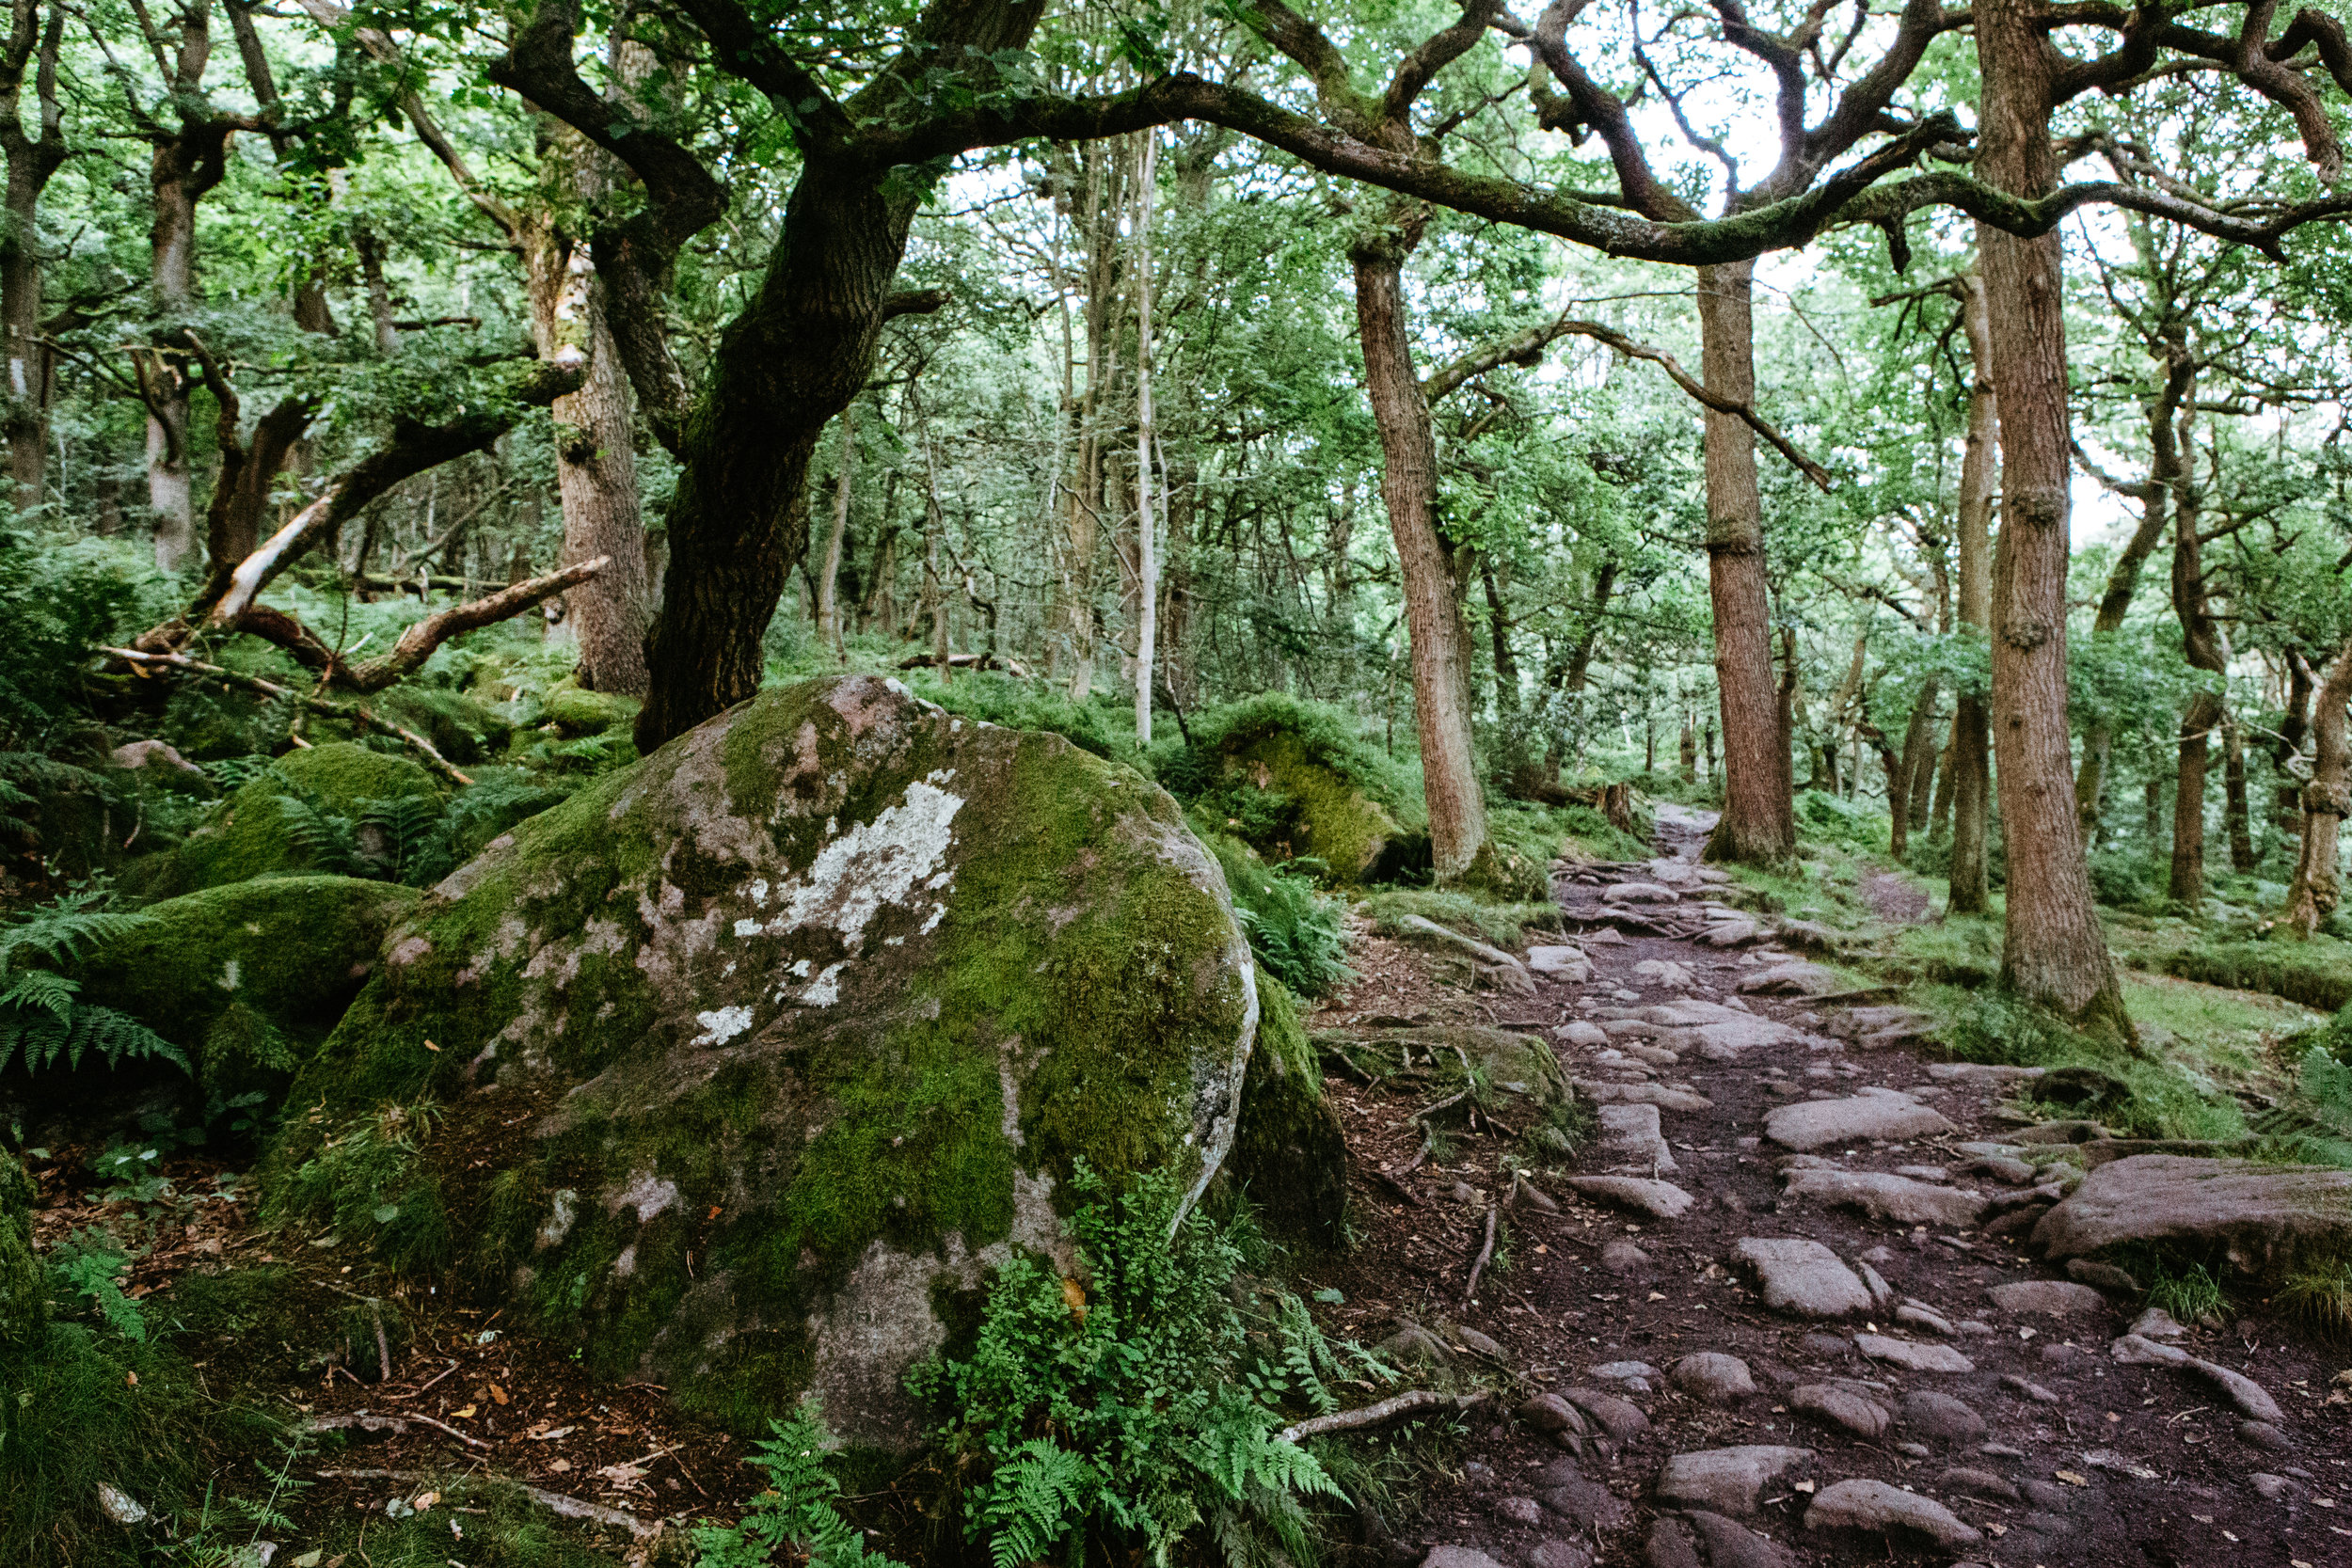 An old millstone on the path in Padley Gorge